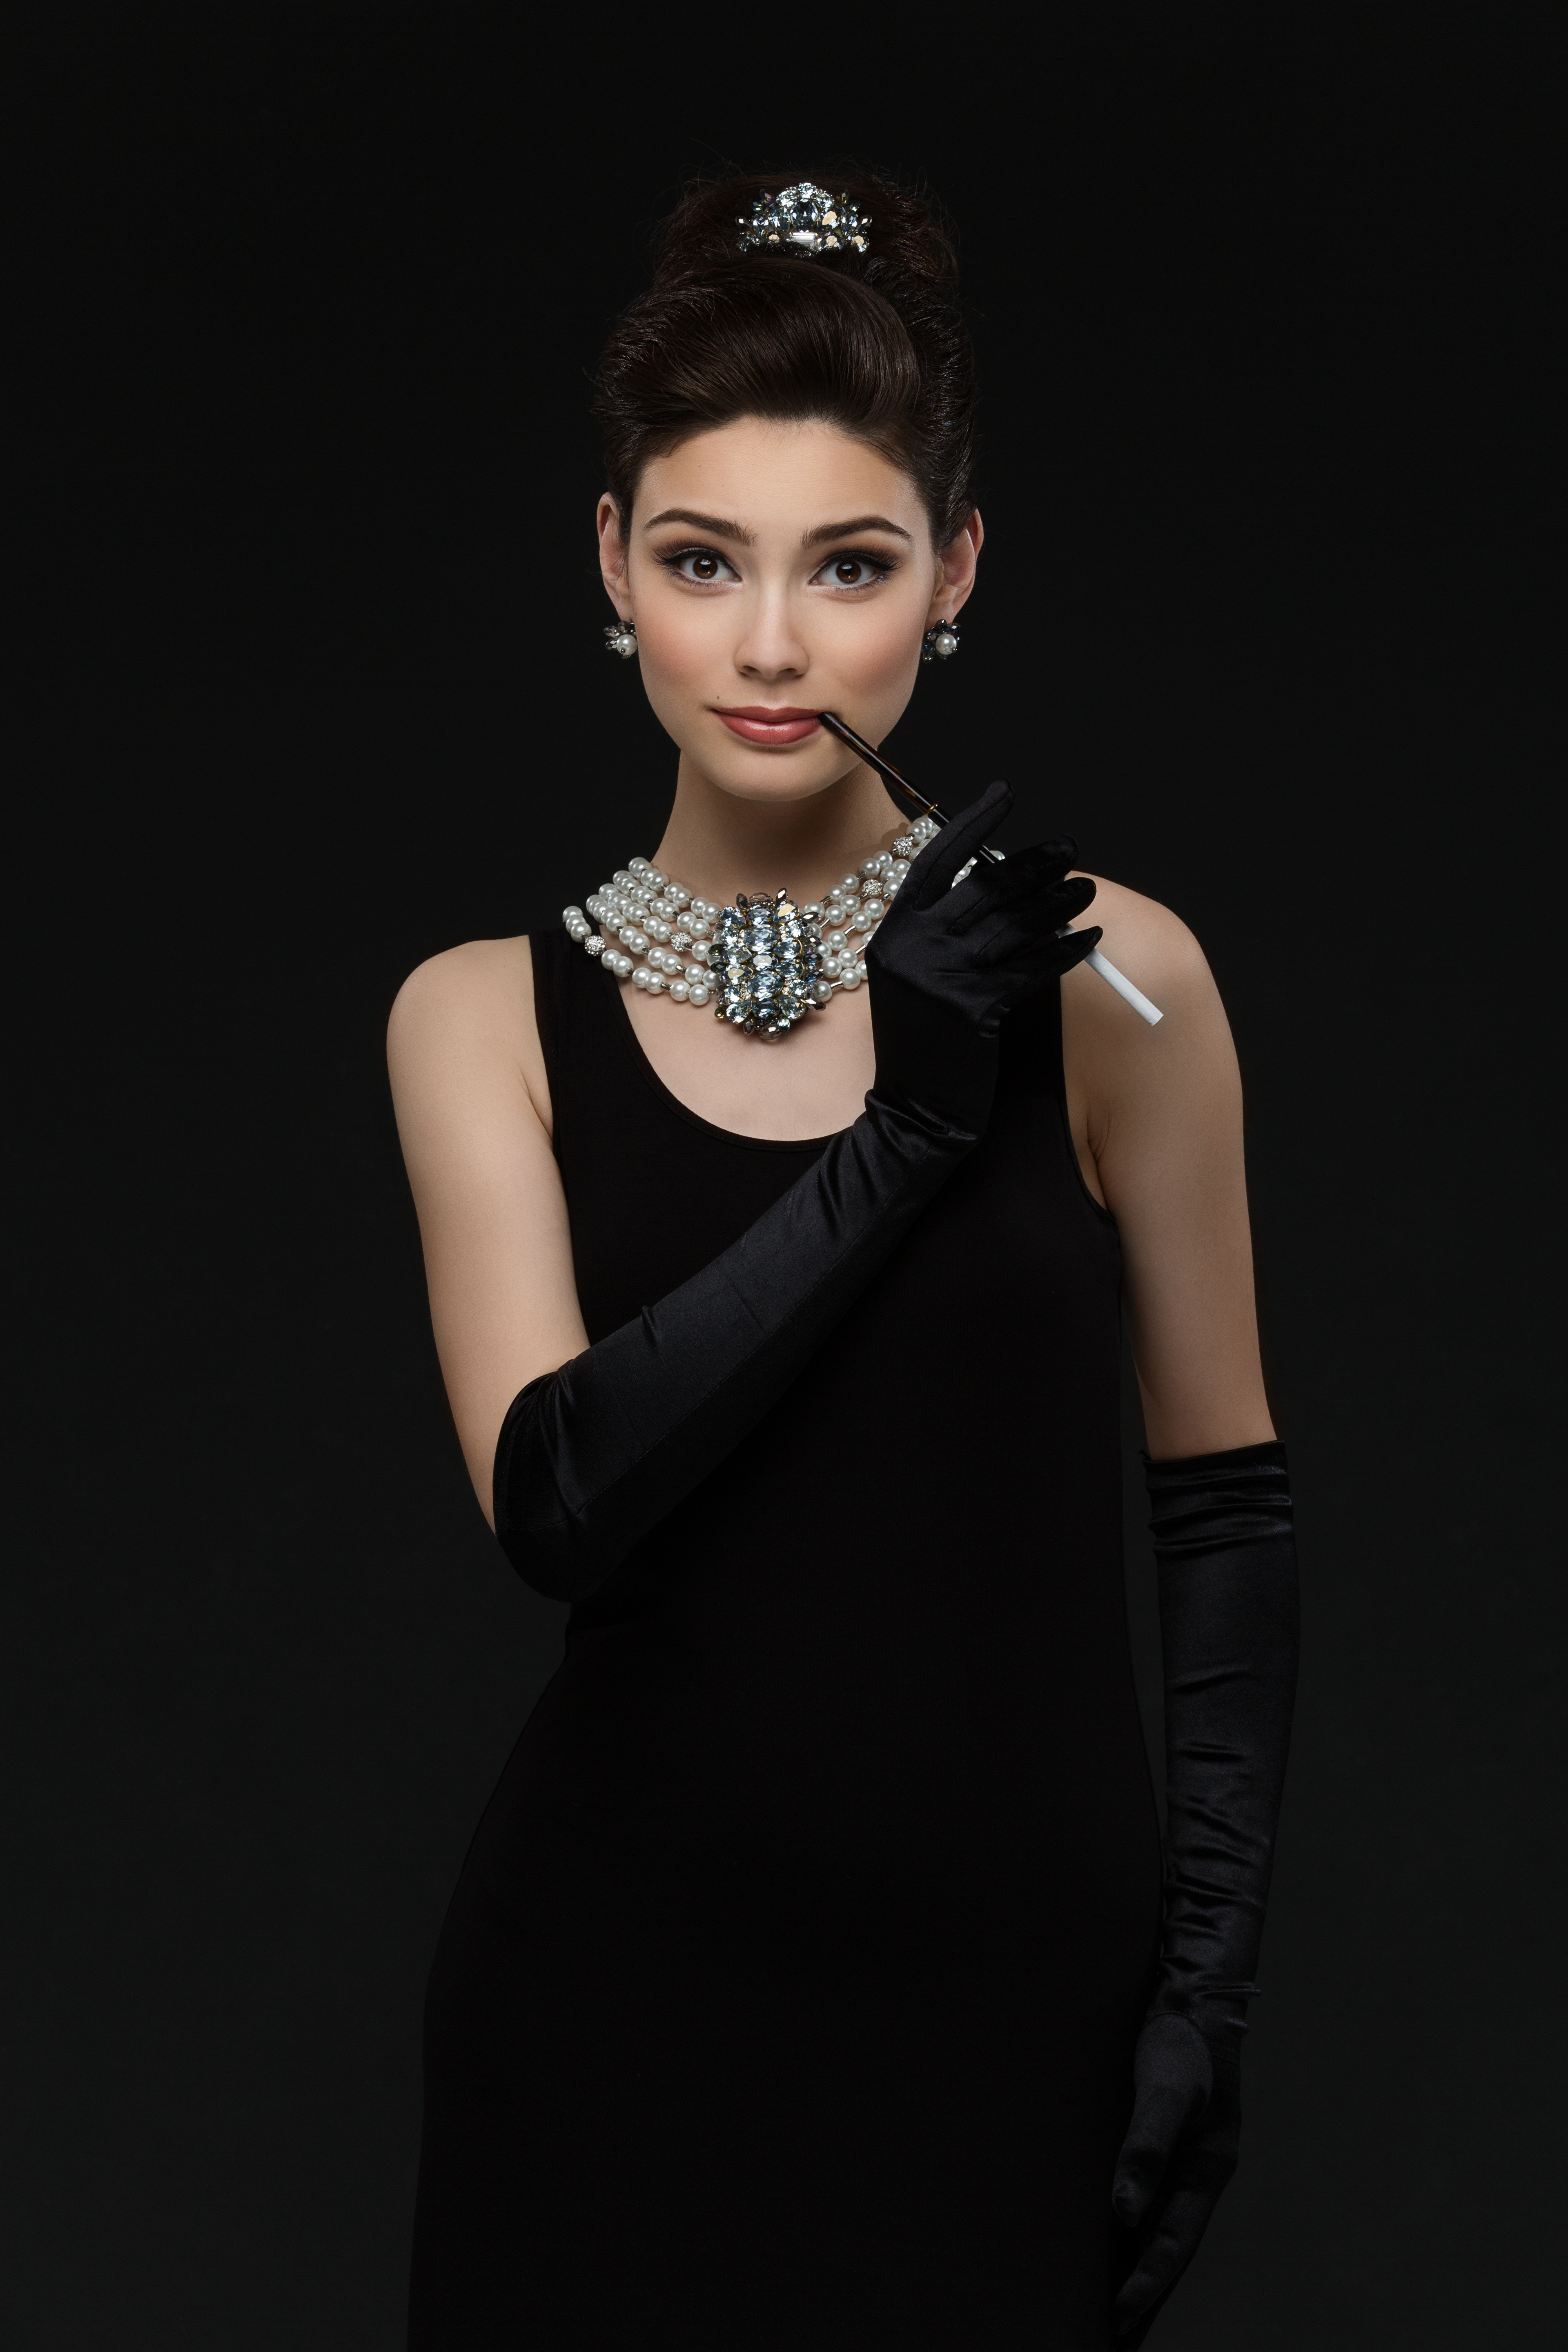 Best ideas about Audrey Hepburn DIY Costume . Save or Pin DIY Audrey Hepburn Costume Using Clothes from Your Now.